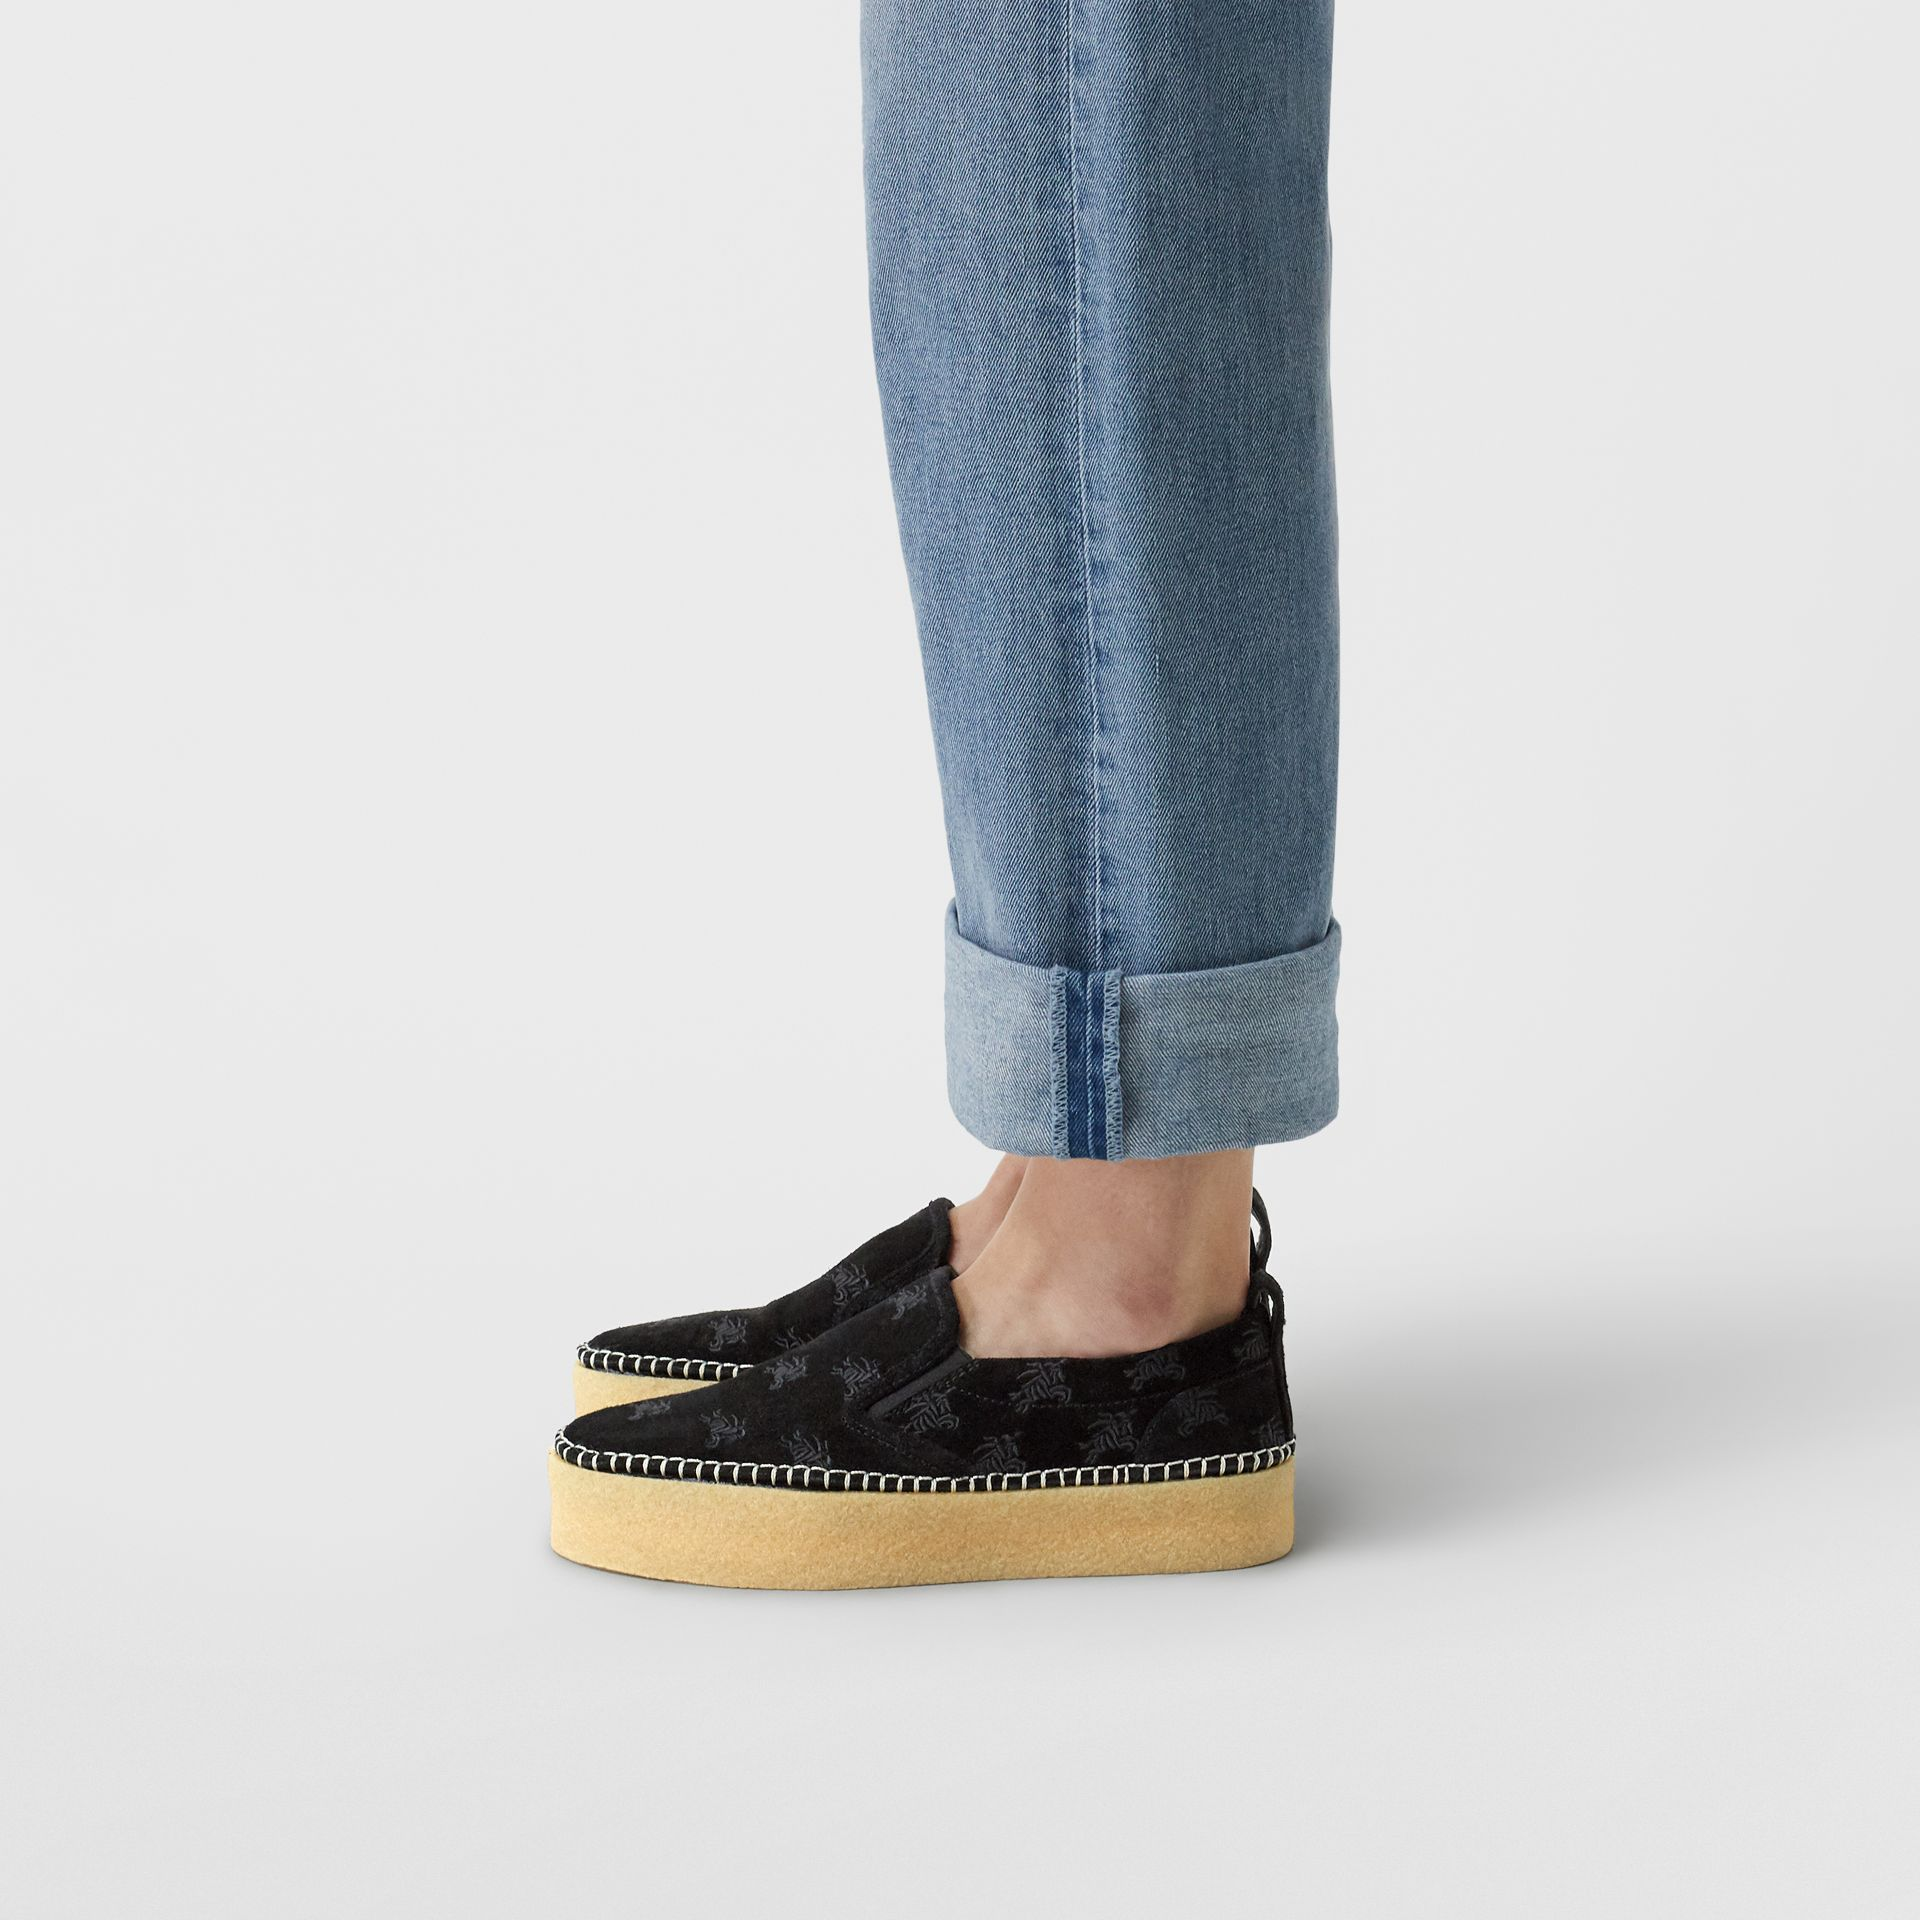 EKD Suede Slip-on Sneakers in Black - Women | Burberry United States - gallery image 2